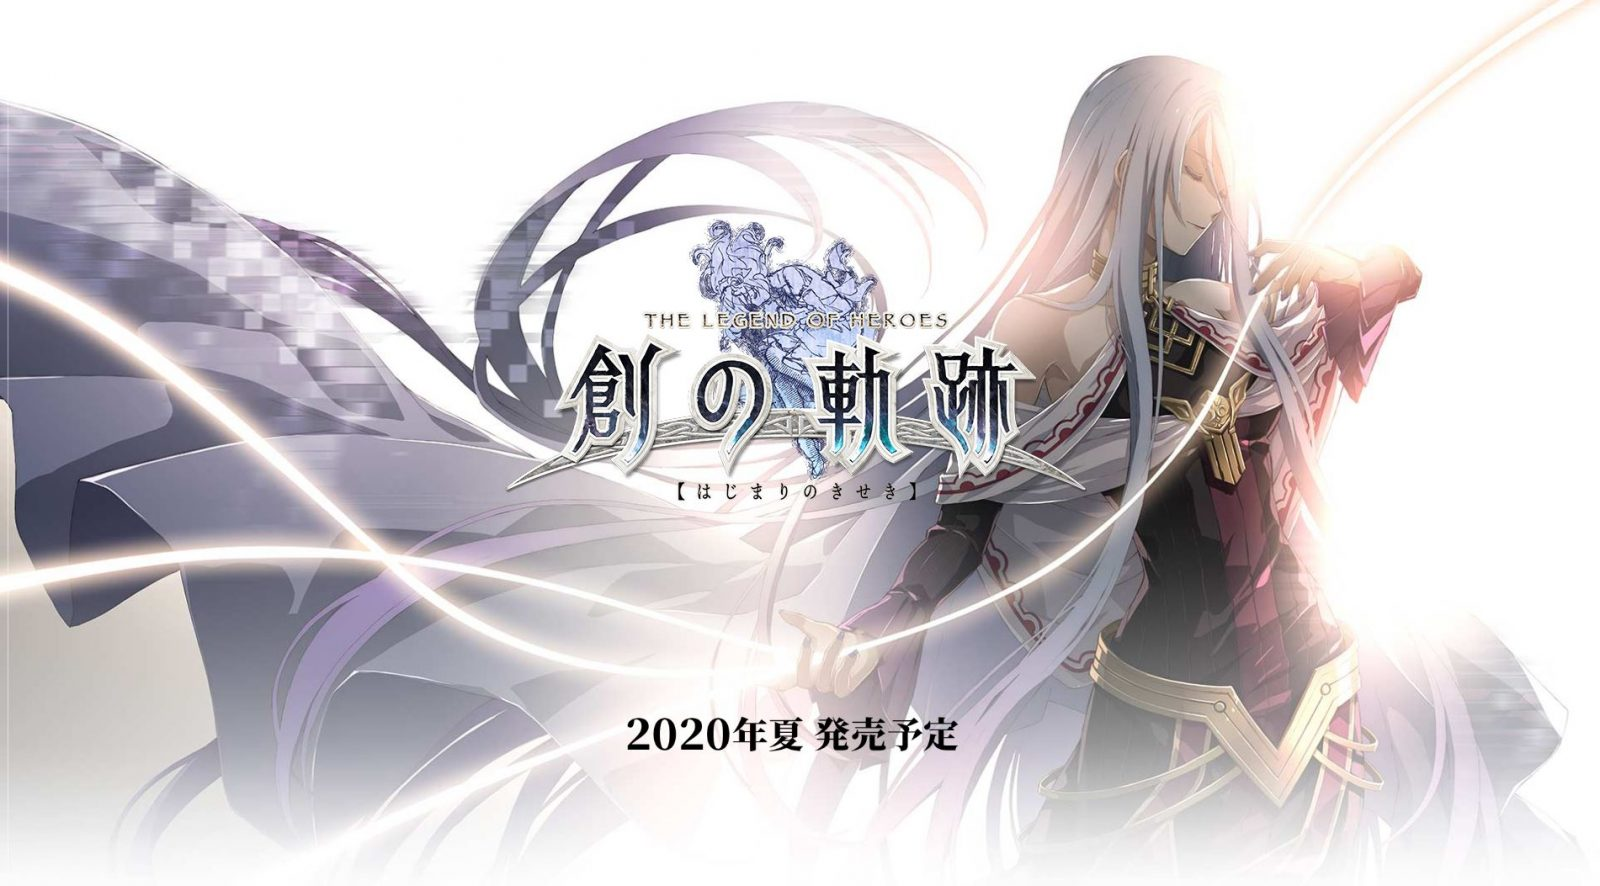 The Legend of Heroes: Hajimari no Kiseki Announced for PS4, Launches in 2020